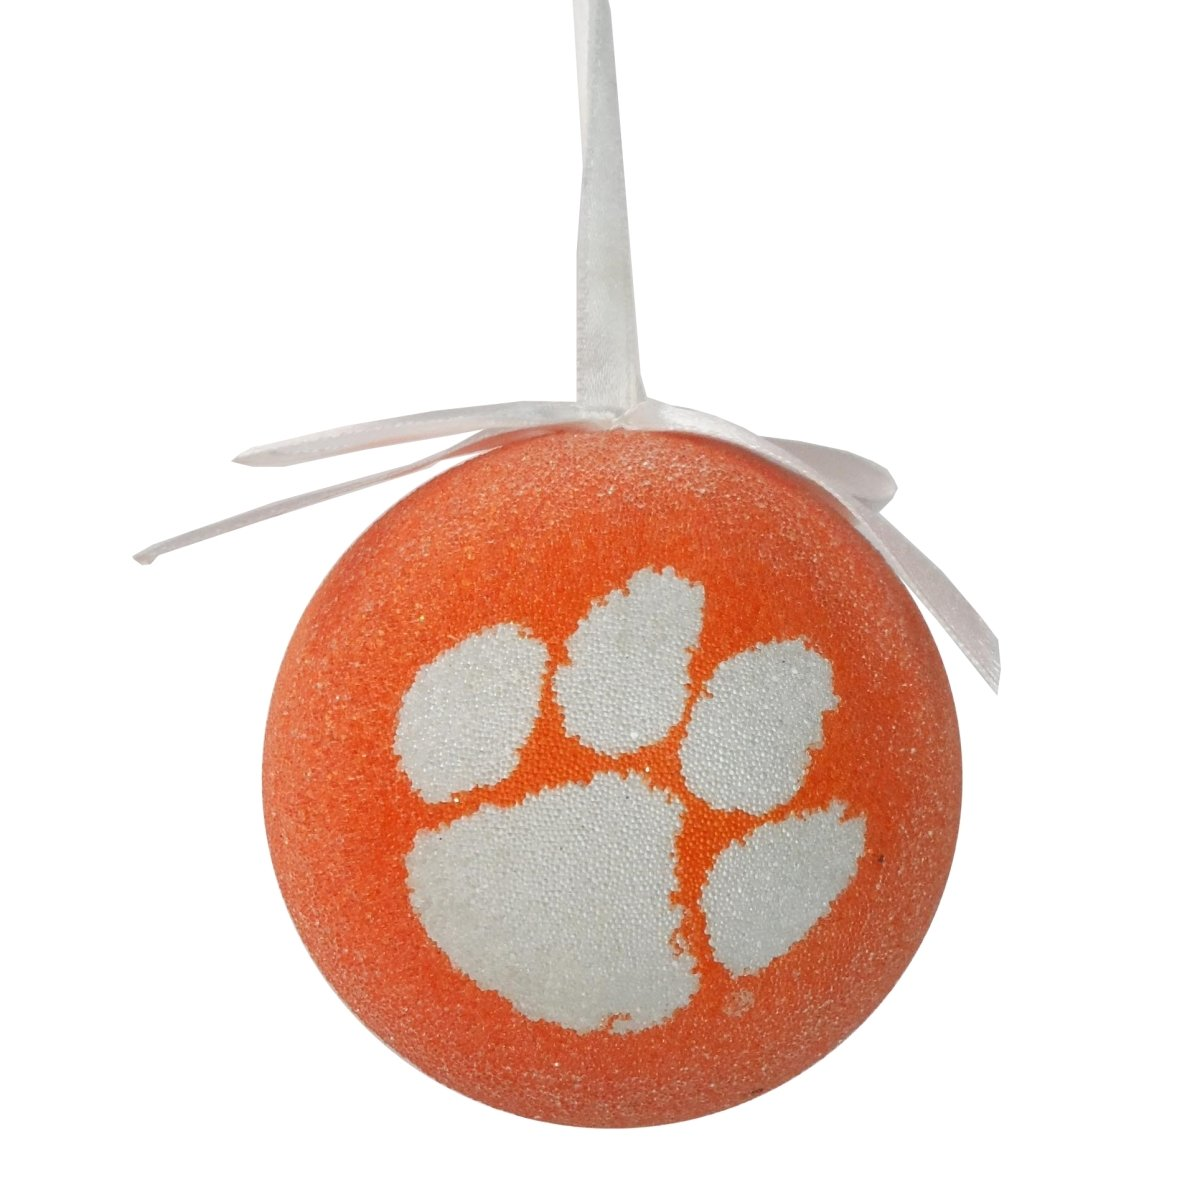 "3"" Styrofoam Ball Ornament With White Paw - Mr. Knickerbocker"